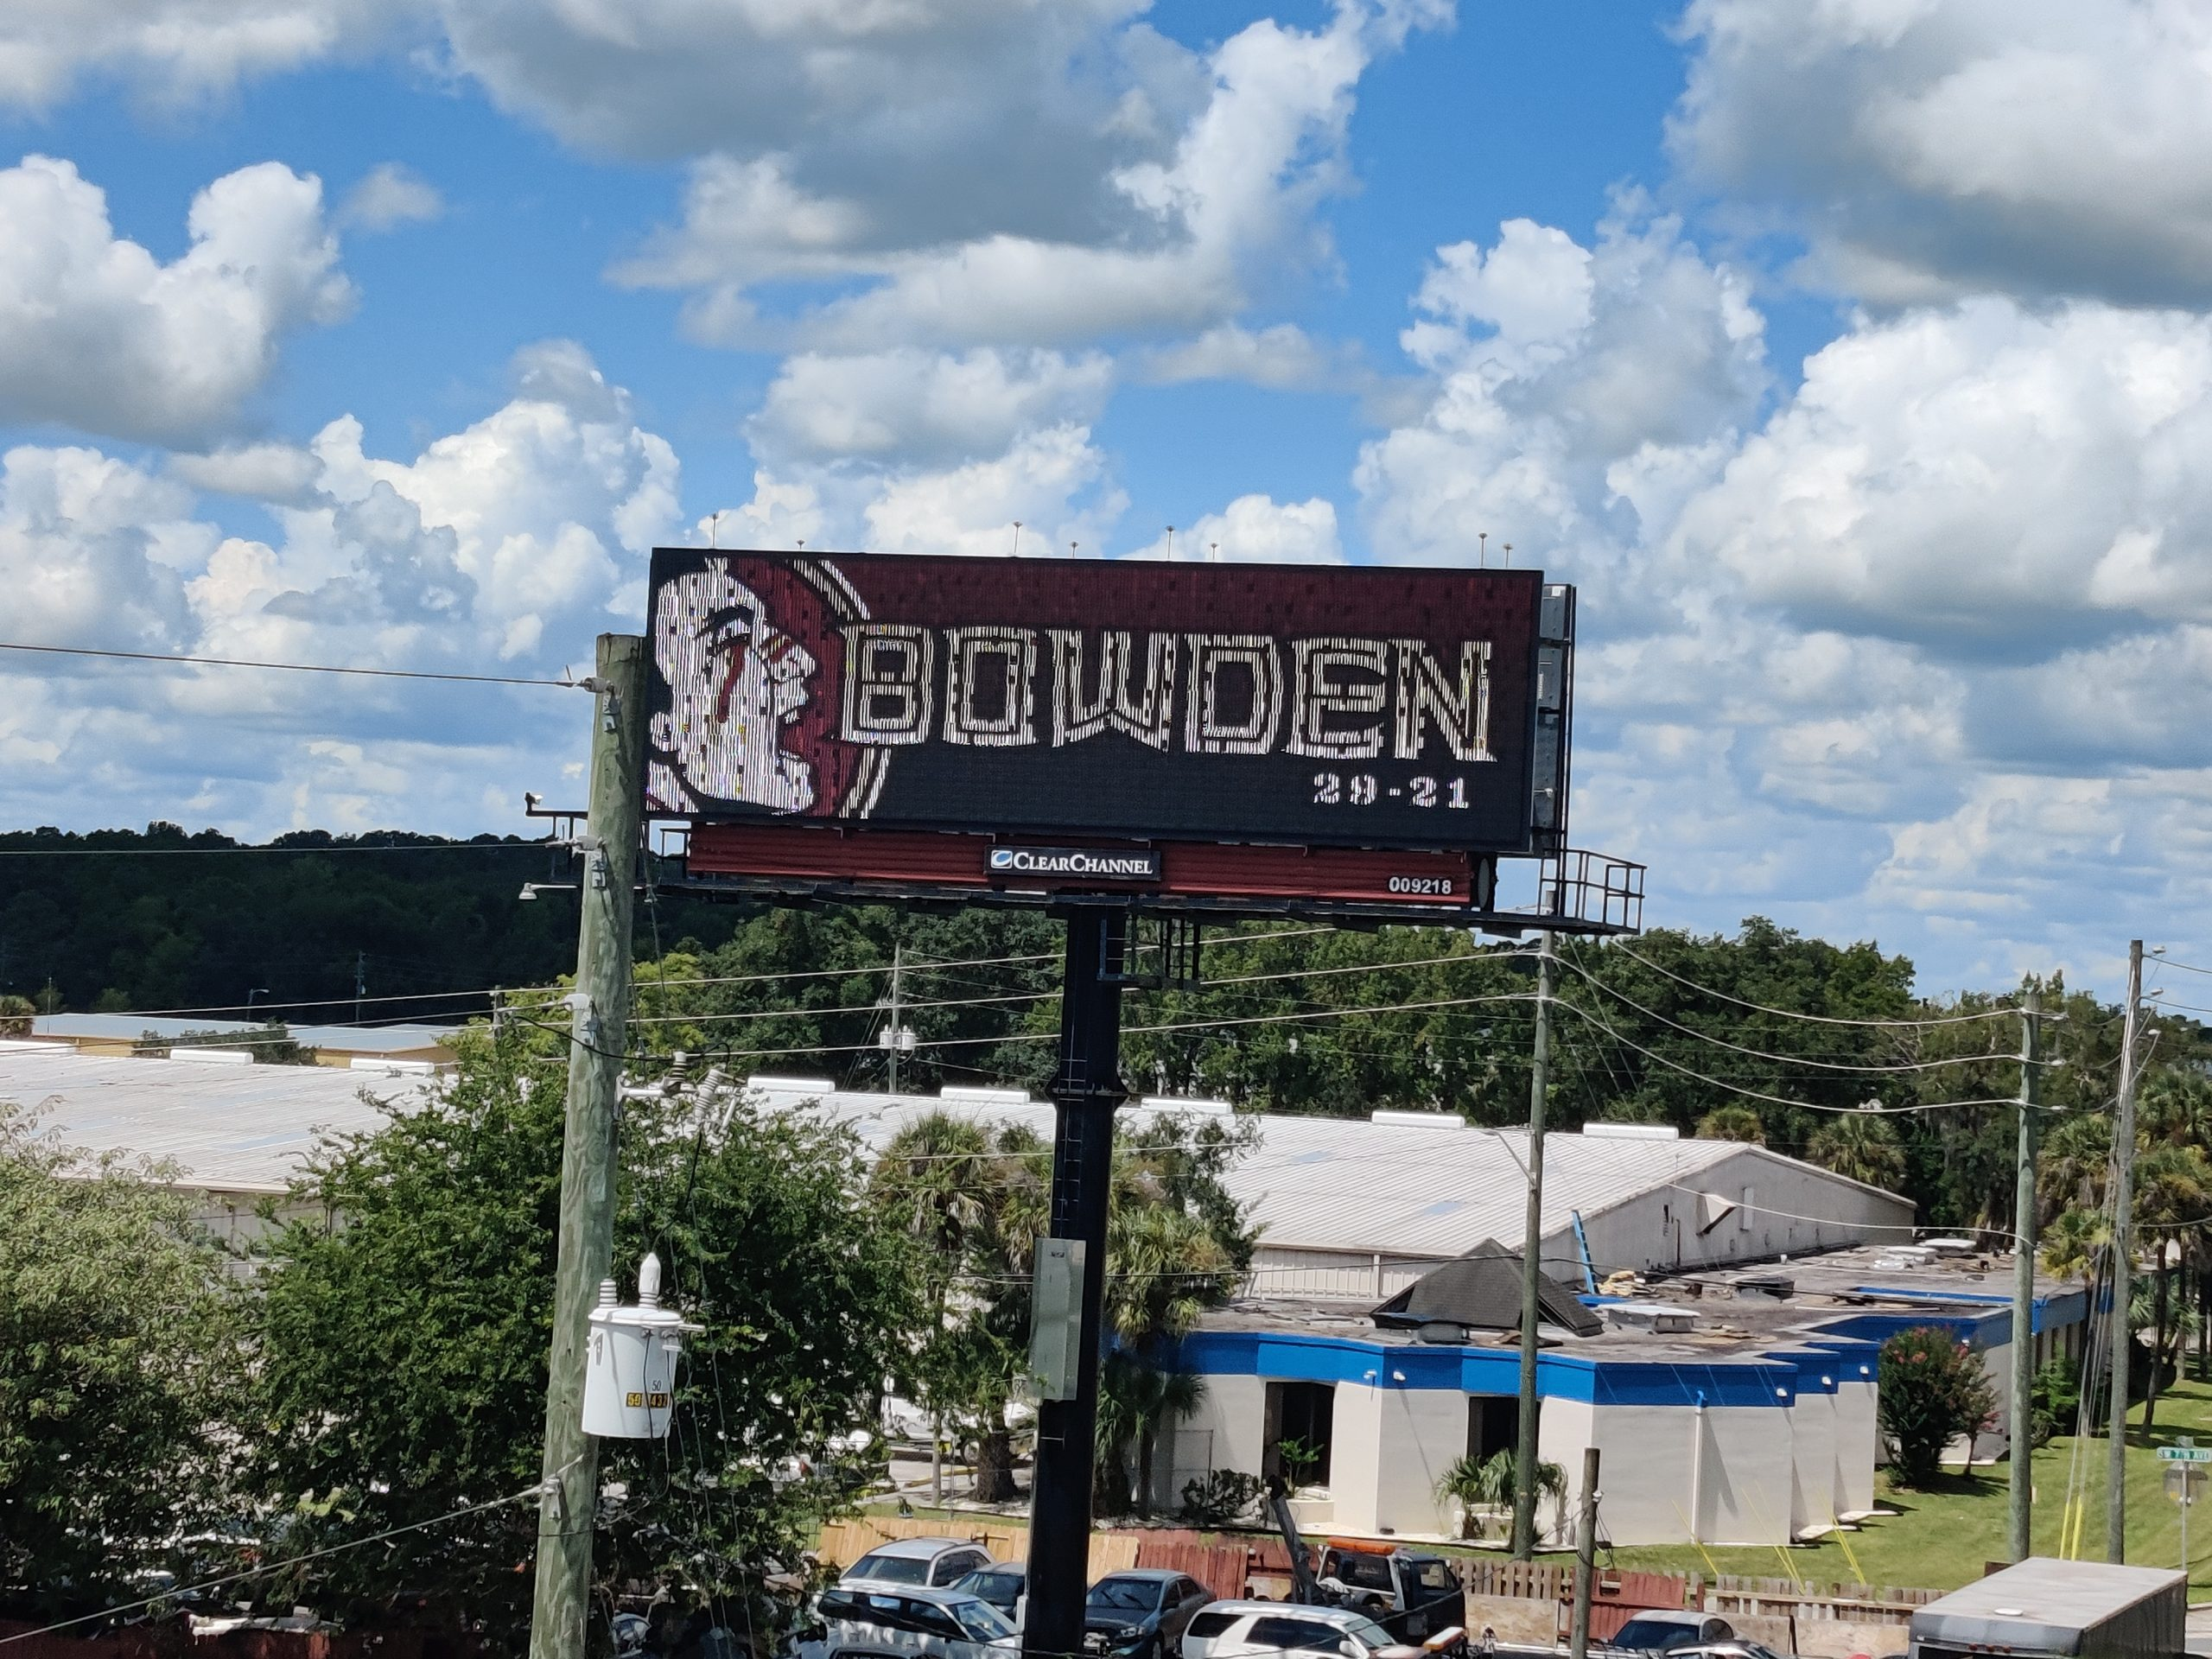 08-11-2021 Bobby Bowden - Honored on Sign